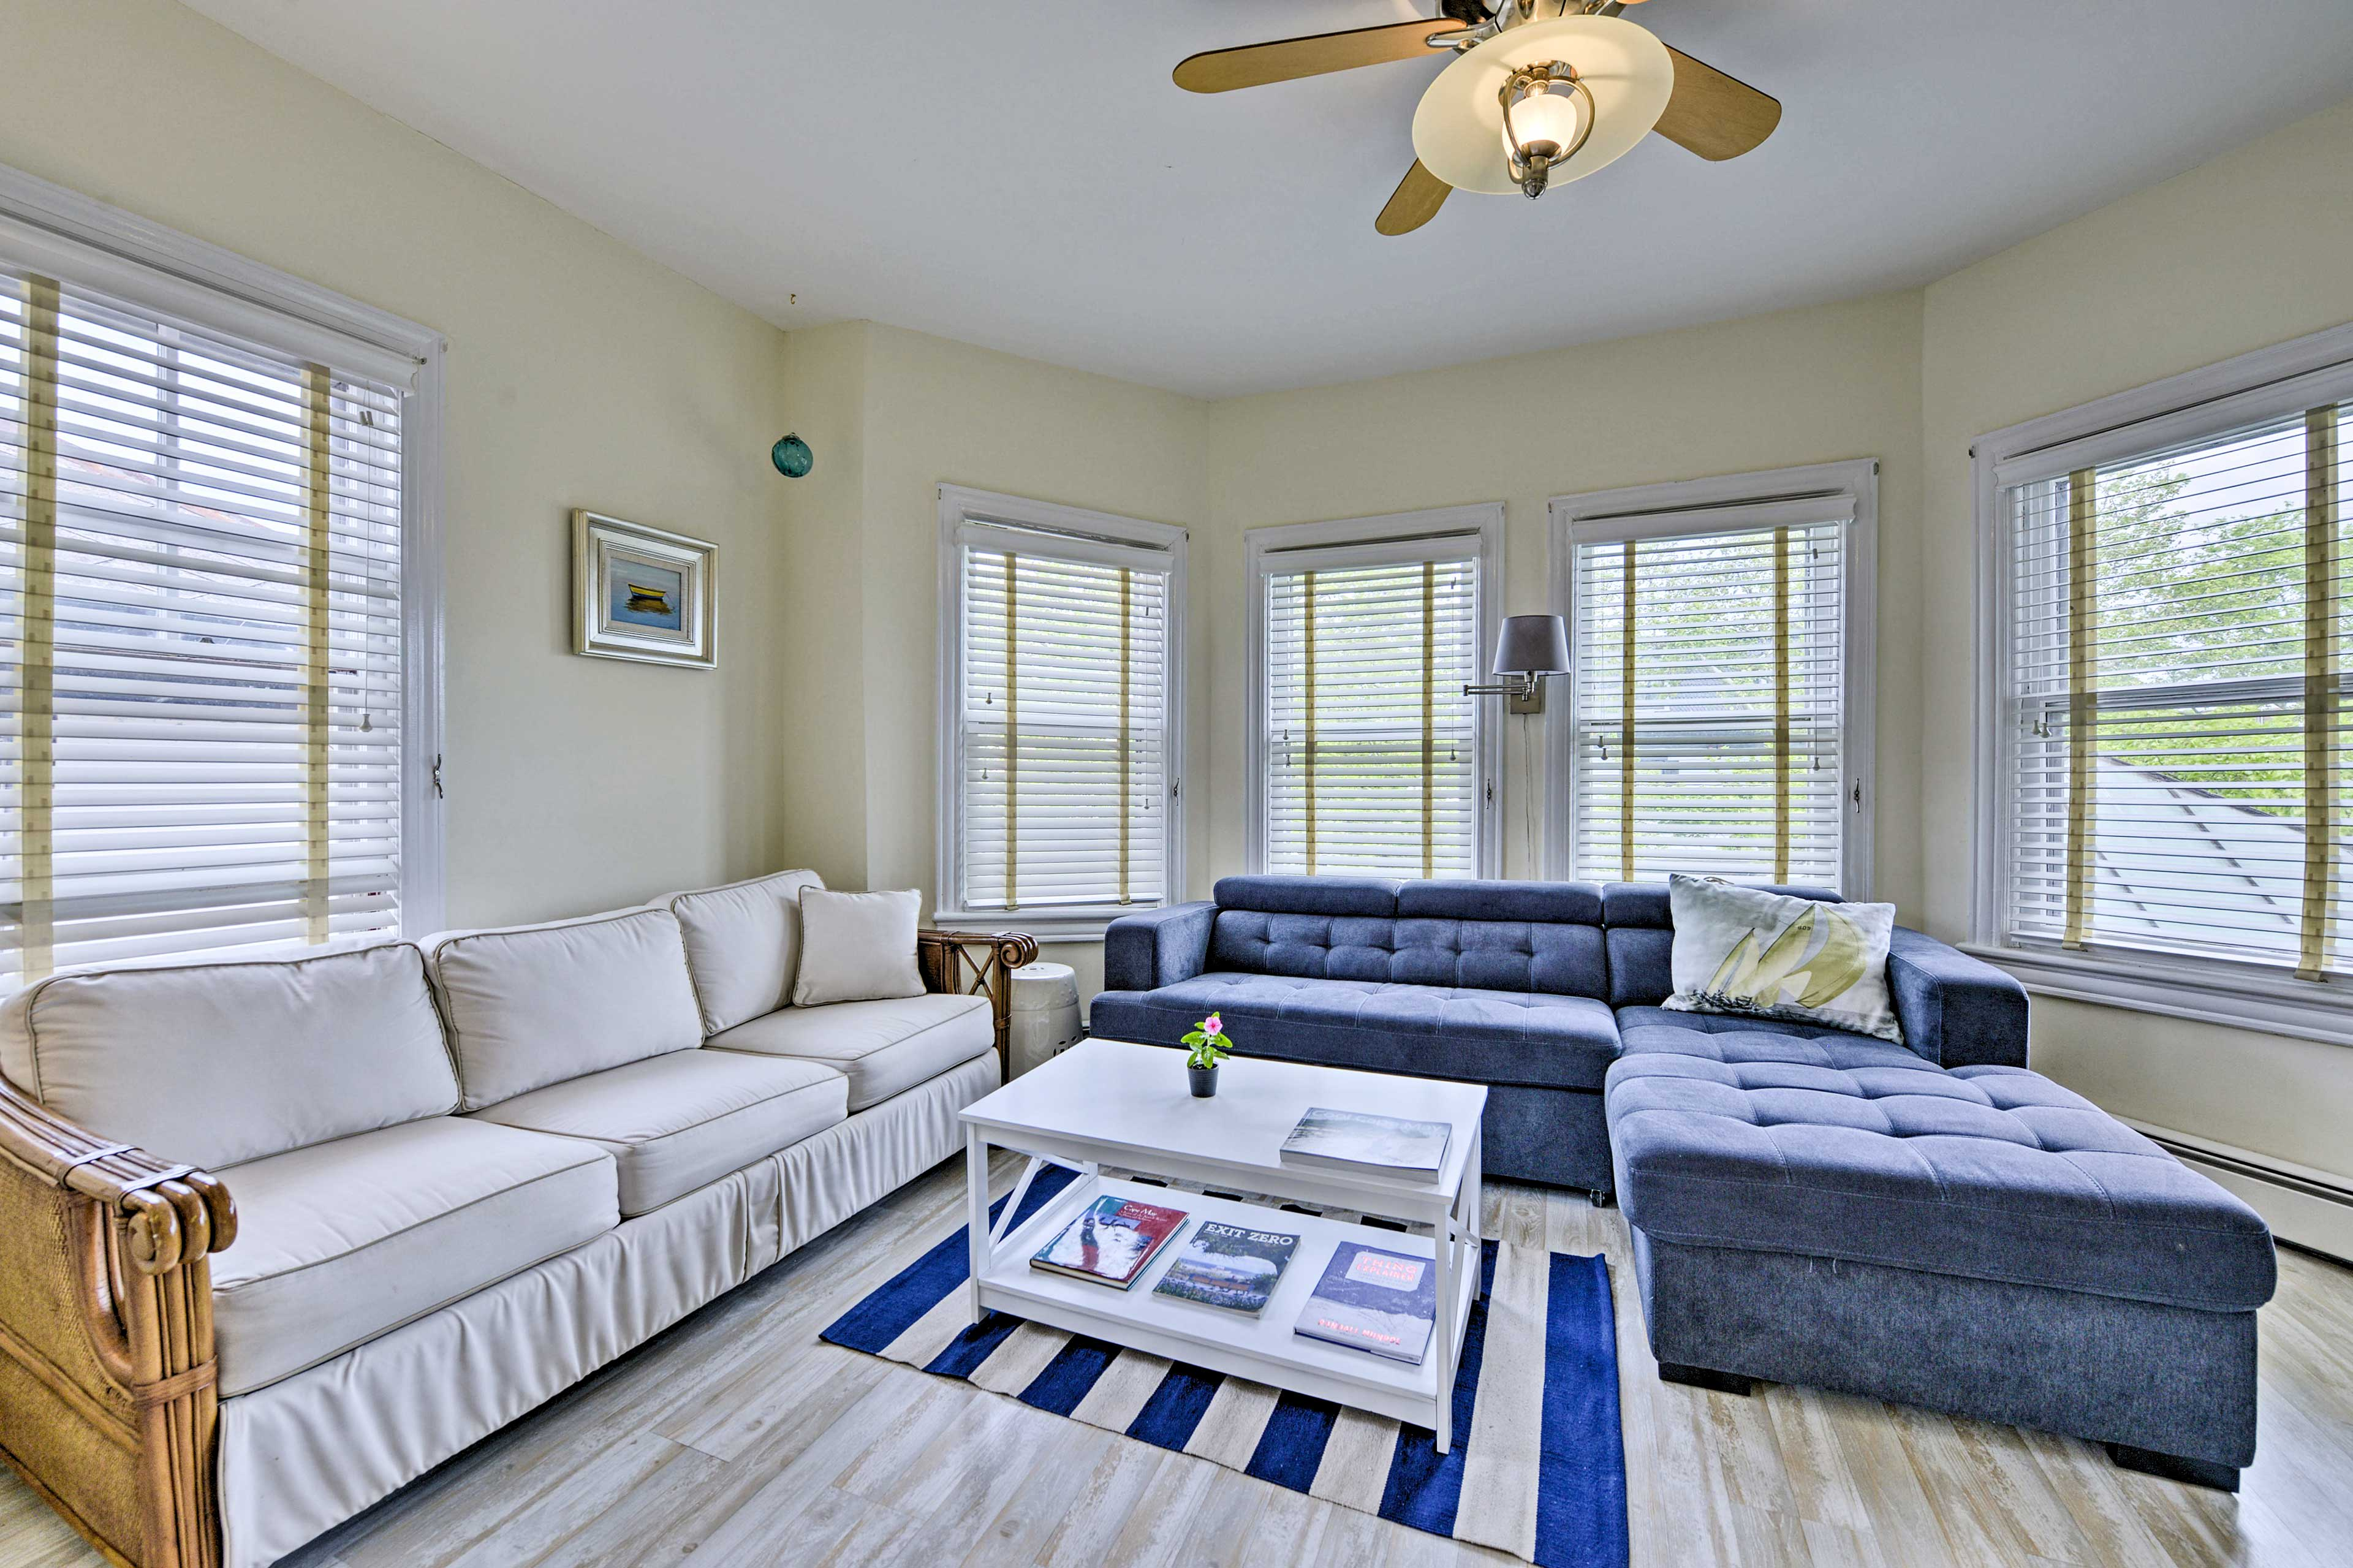 The living room sofa expands to sleep an additional 2 guests.